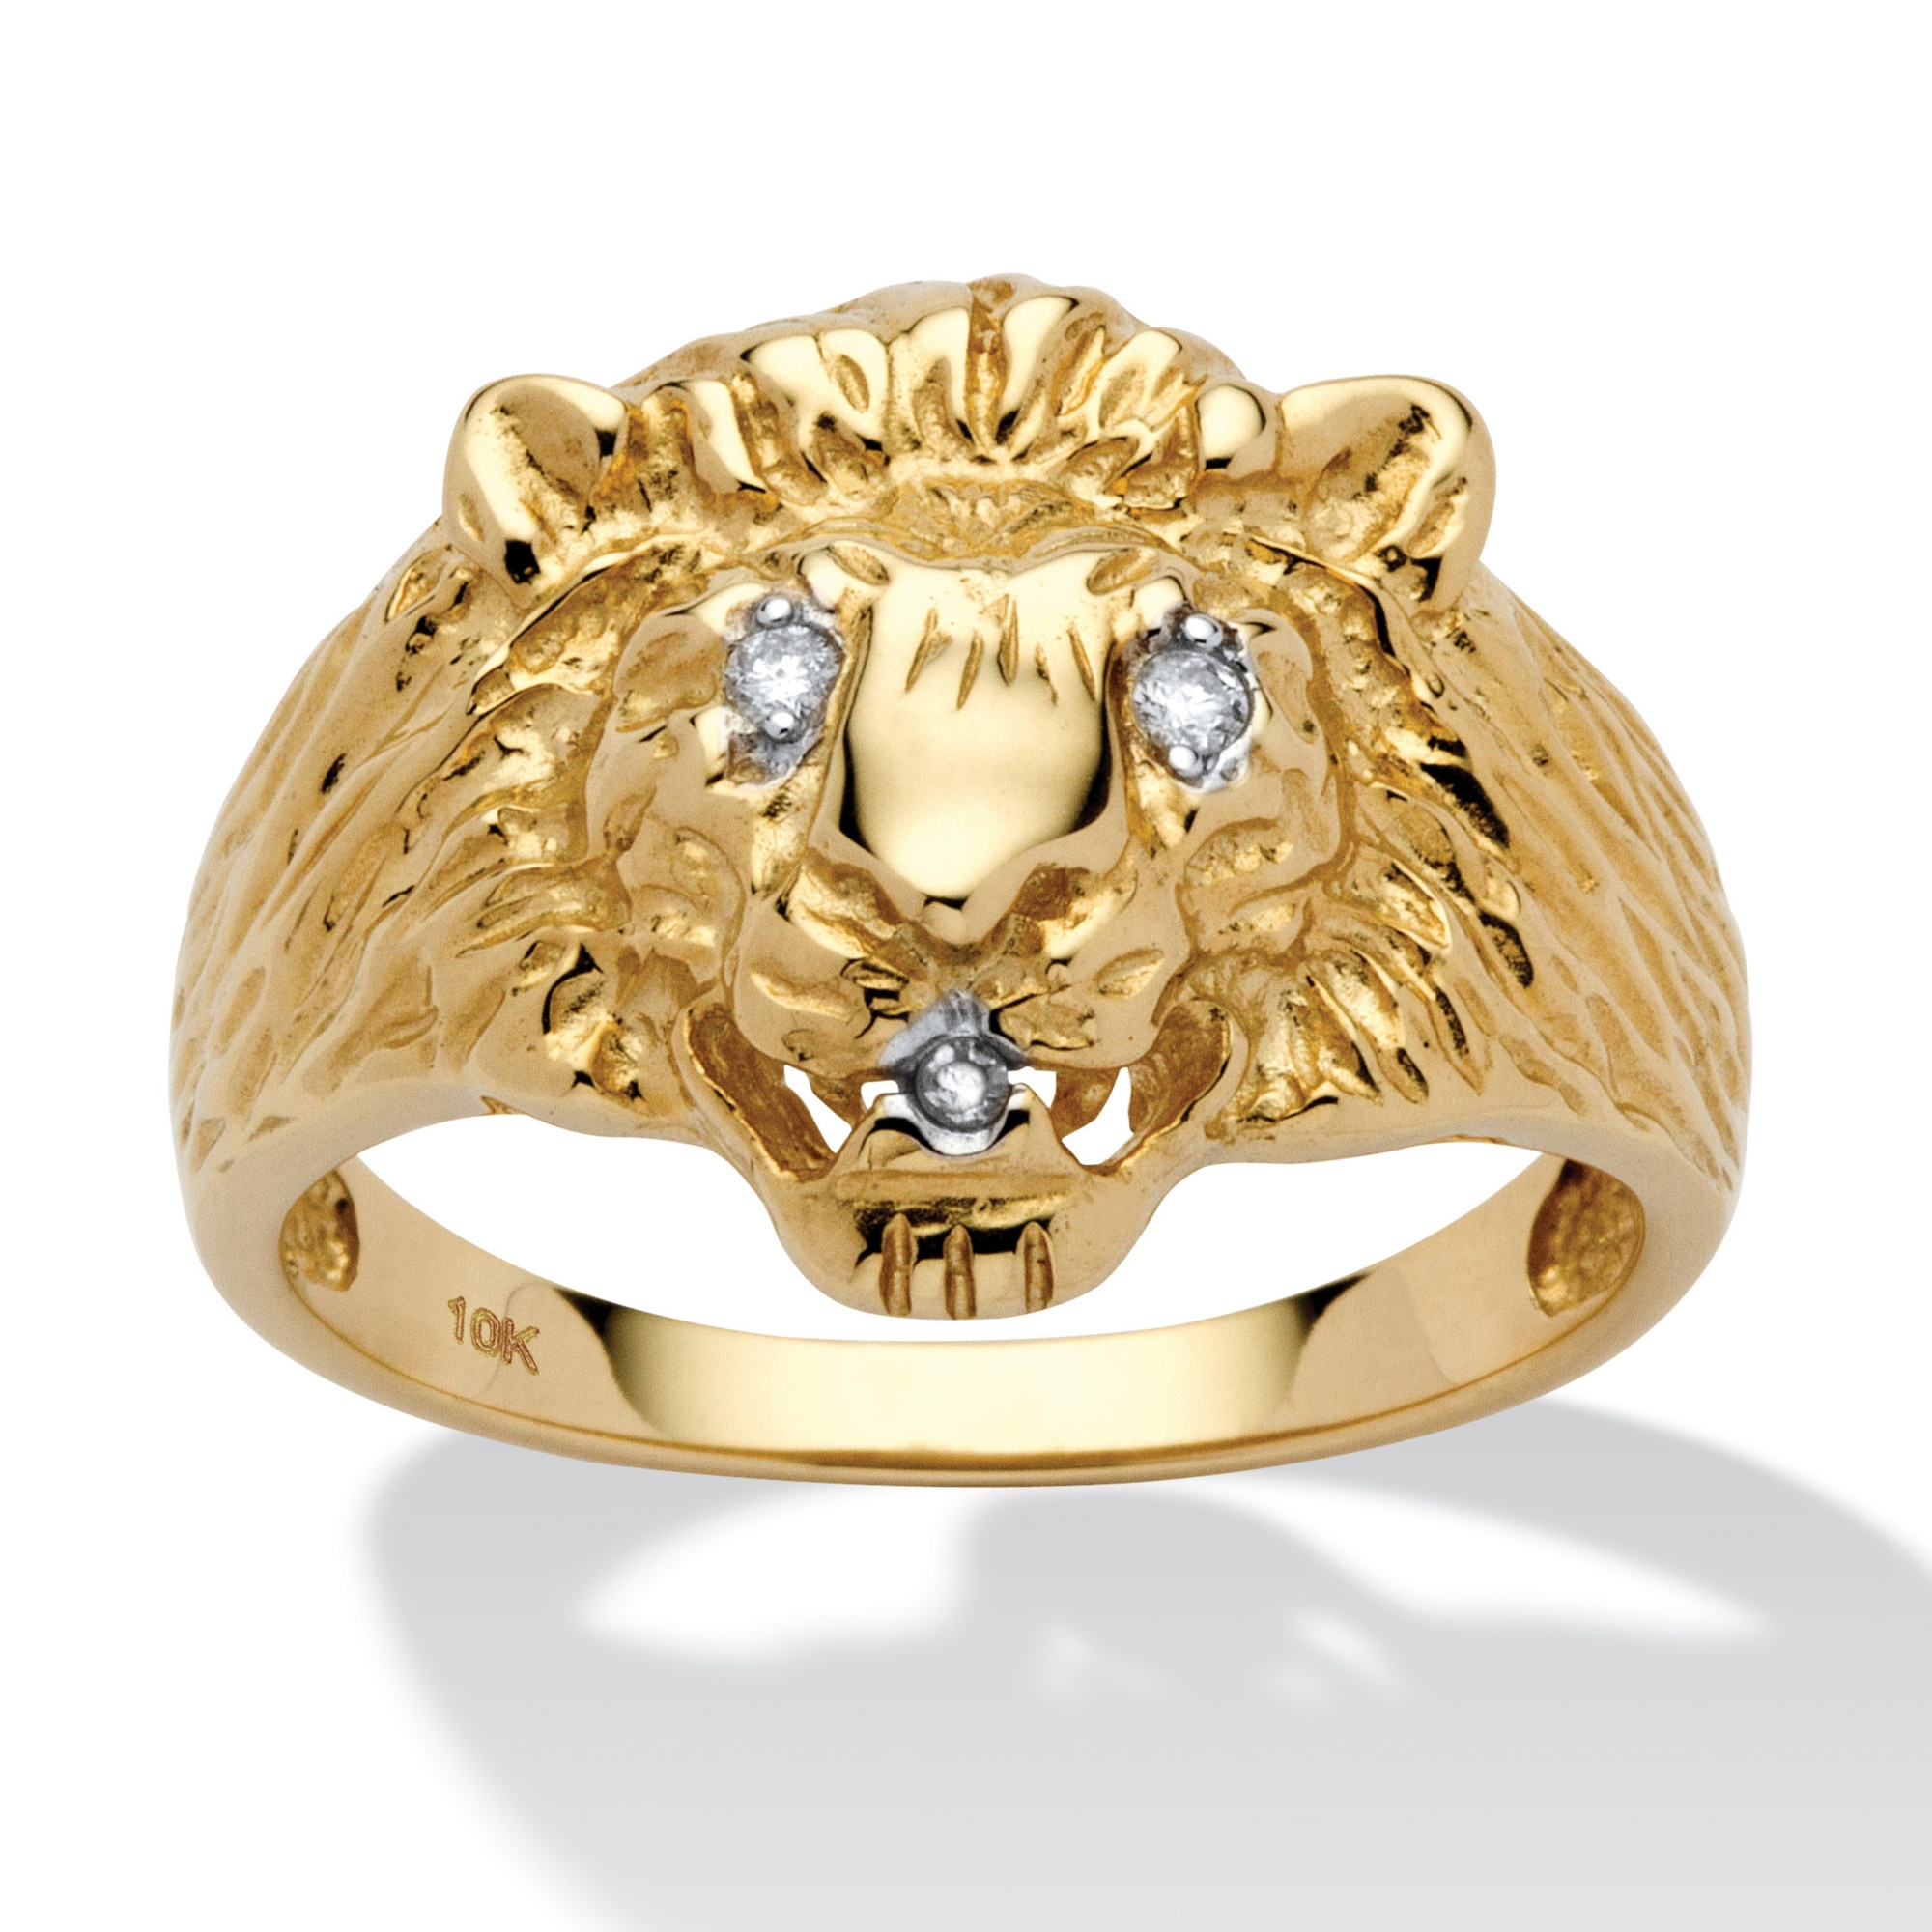 ring designs for man male caymancode gold rings stones men without